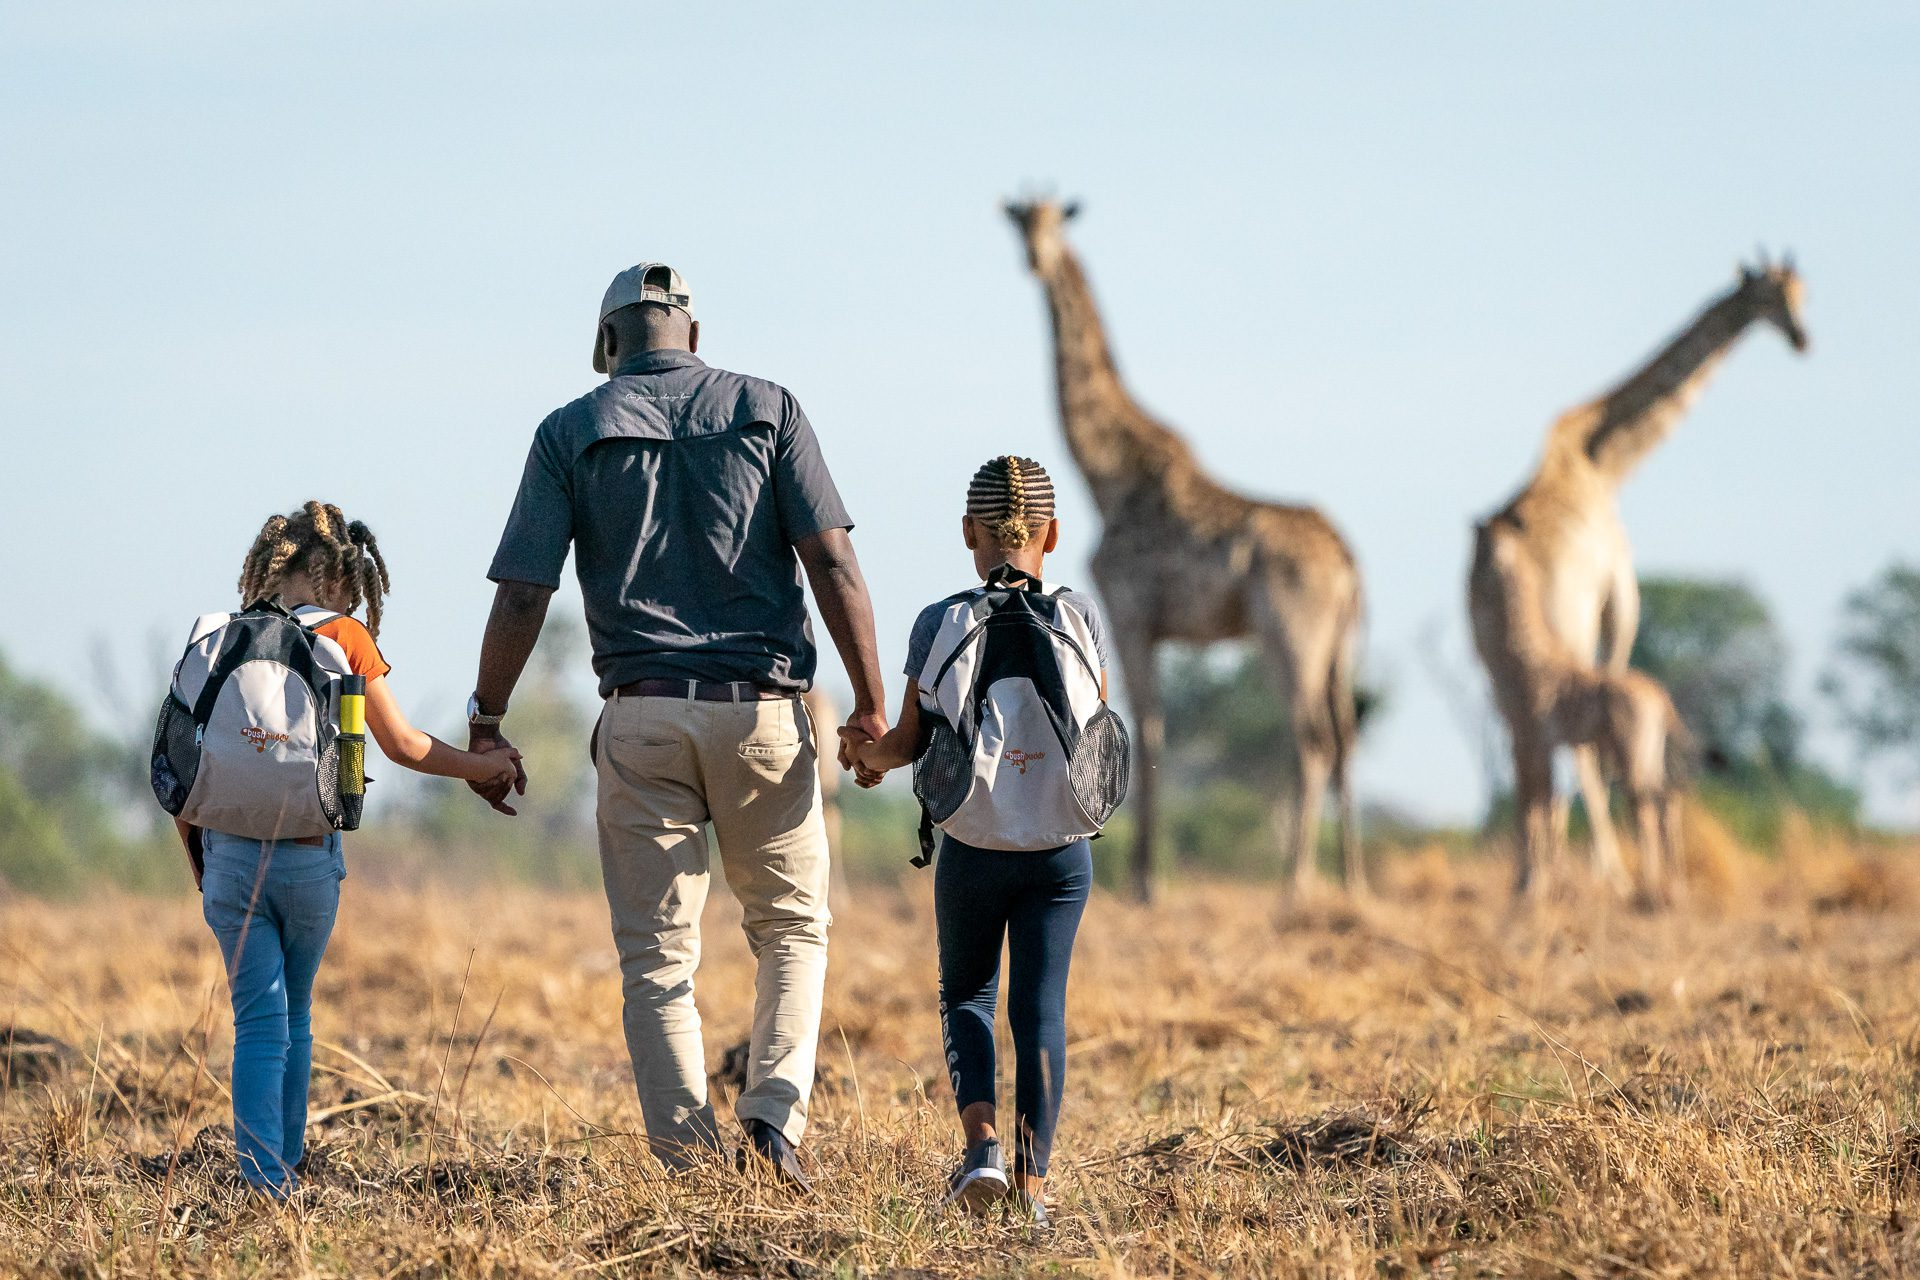 seba camp bush walk guide with two children on the best botswana safari. Family travel activities